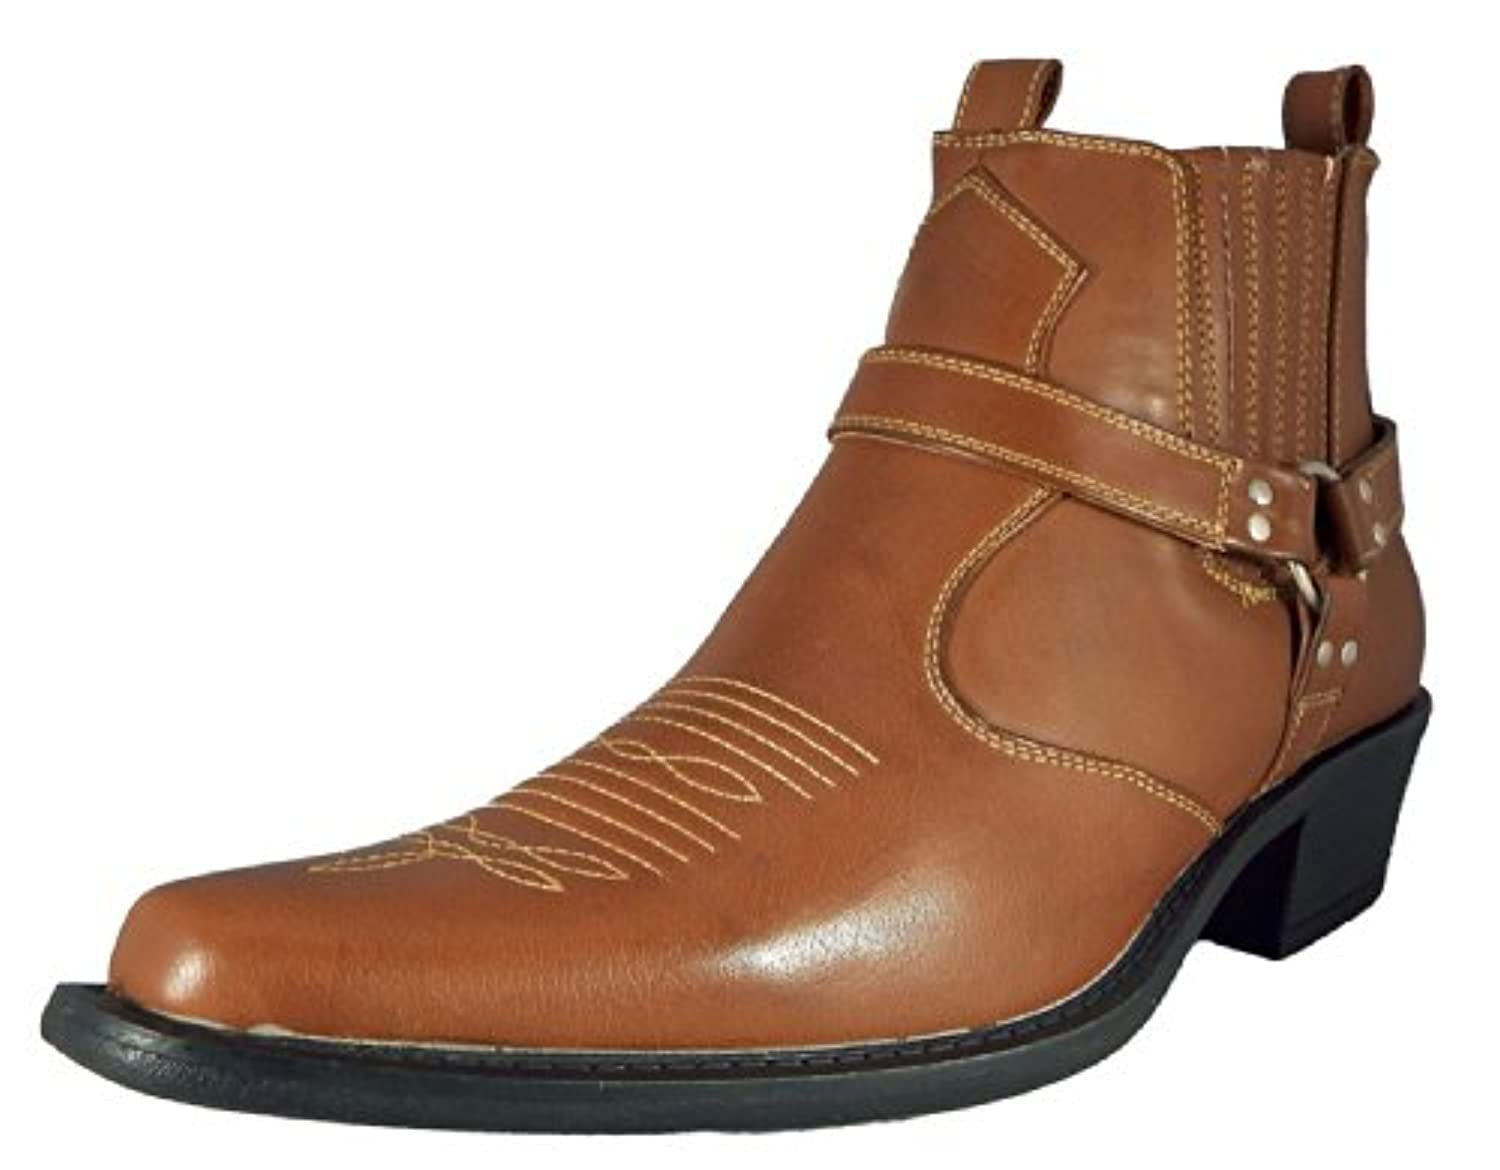 us brass cowboy boots in tan brown and black (6, tan)